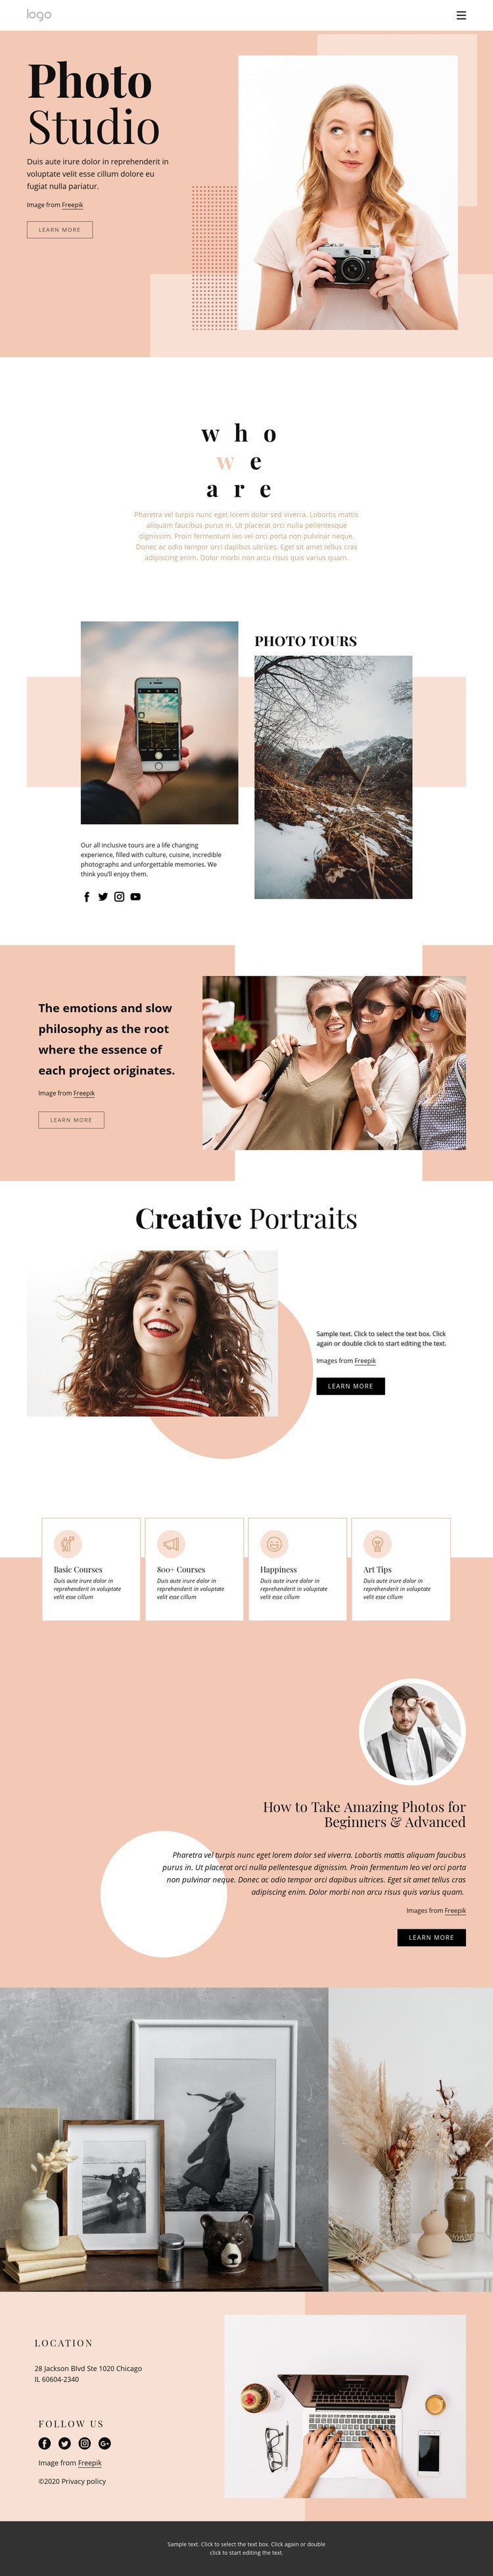 Photography courses Html Code Example